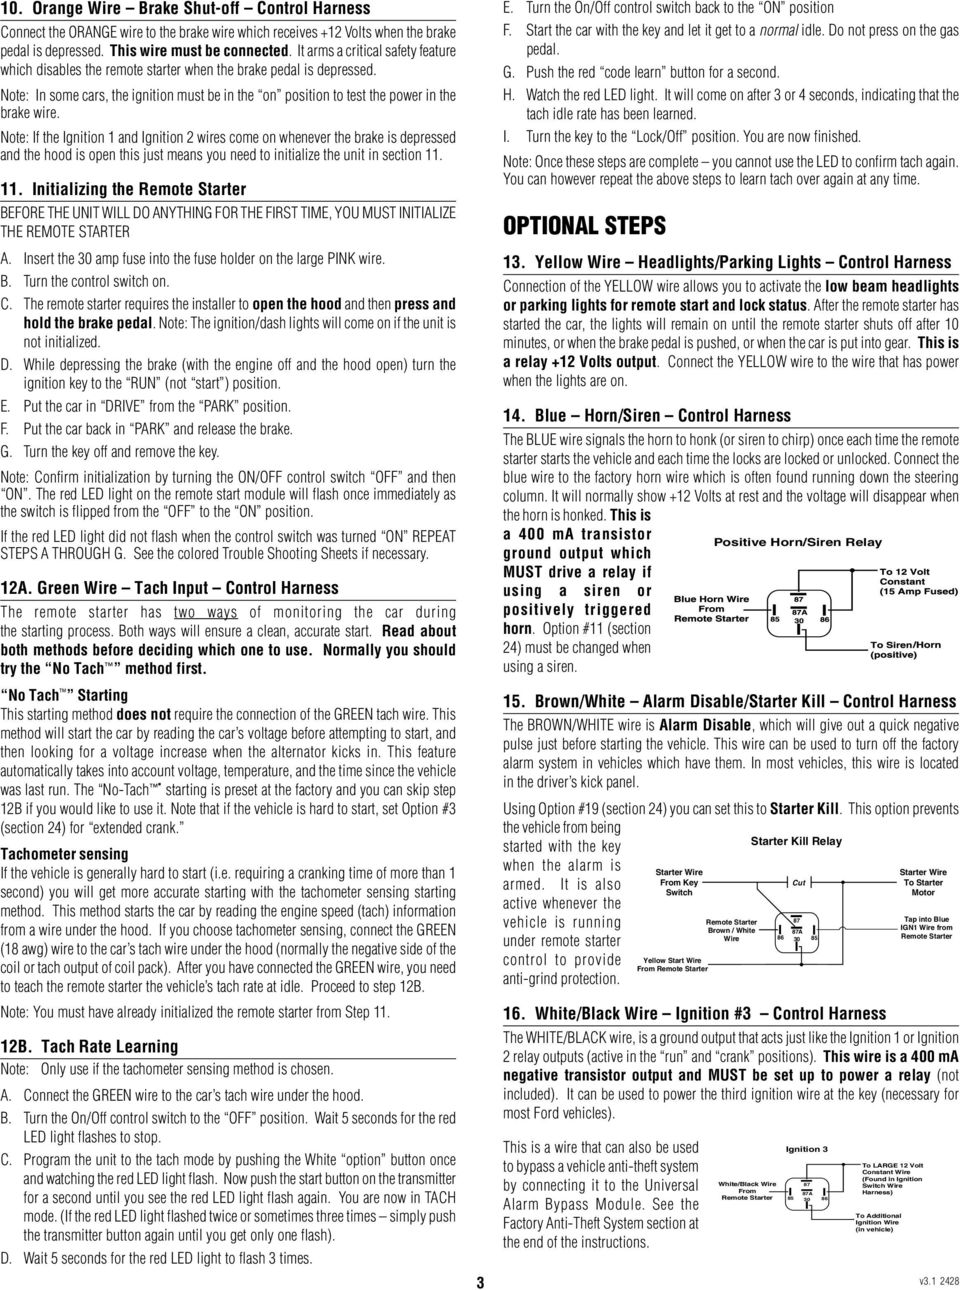 Remote Starter Wiring Harness Control Car Installation Manual For Models 20024 Note If The Ignition 1 And 2 Wires Come On Whenever Brake Is